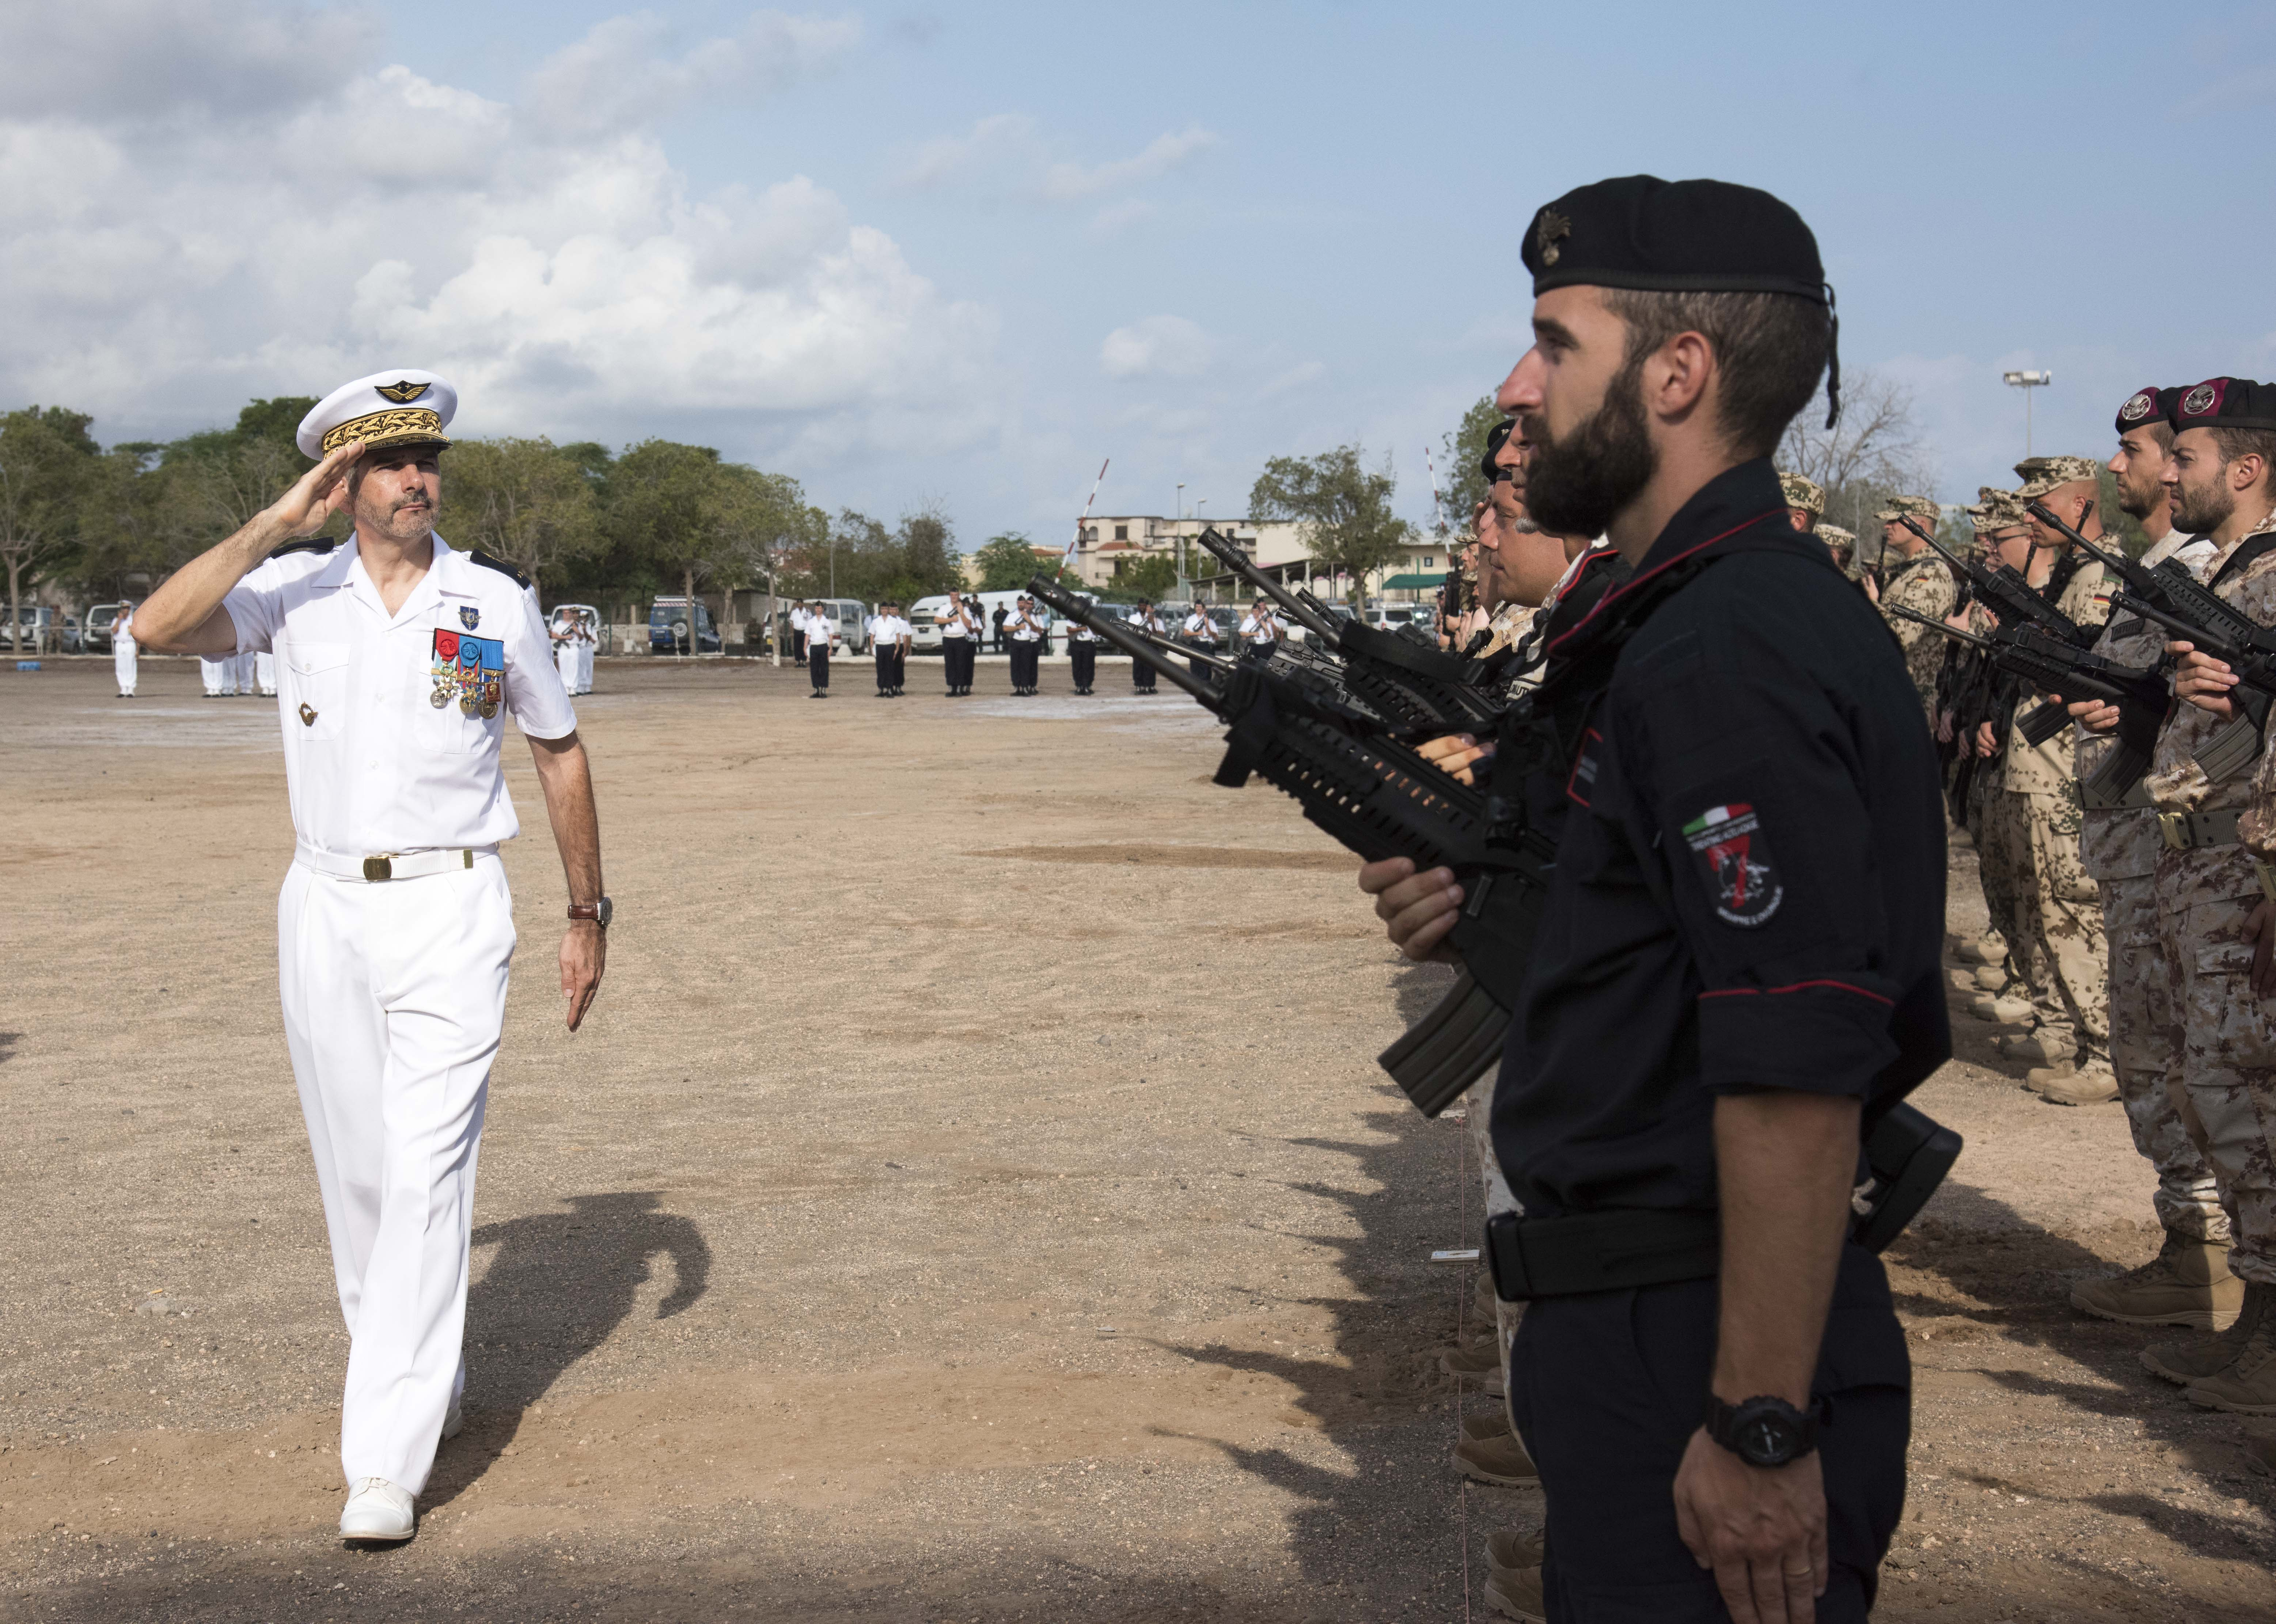 French Air Force Brig. Gen. Phillip Montocchio, salutes while reviewing troops during the Armistice Day ceremony at the French Marine Base, Nov. 11, 2015. Montocchio is the commanding officer for all French forces in Djibouti and was the officiating officer for the event.